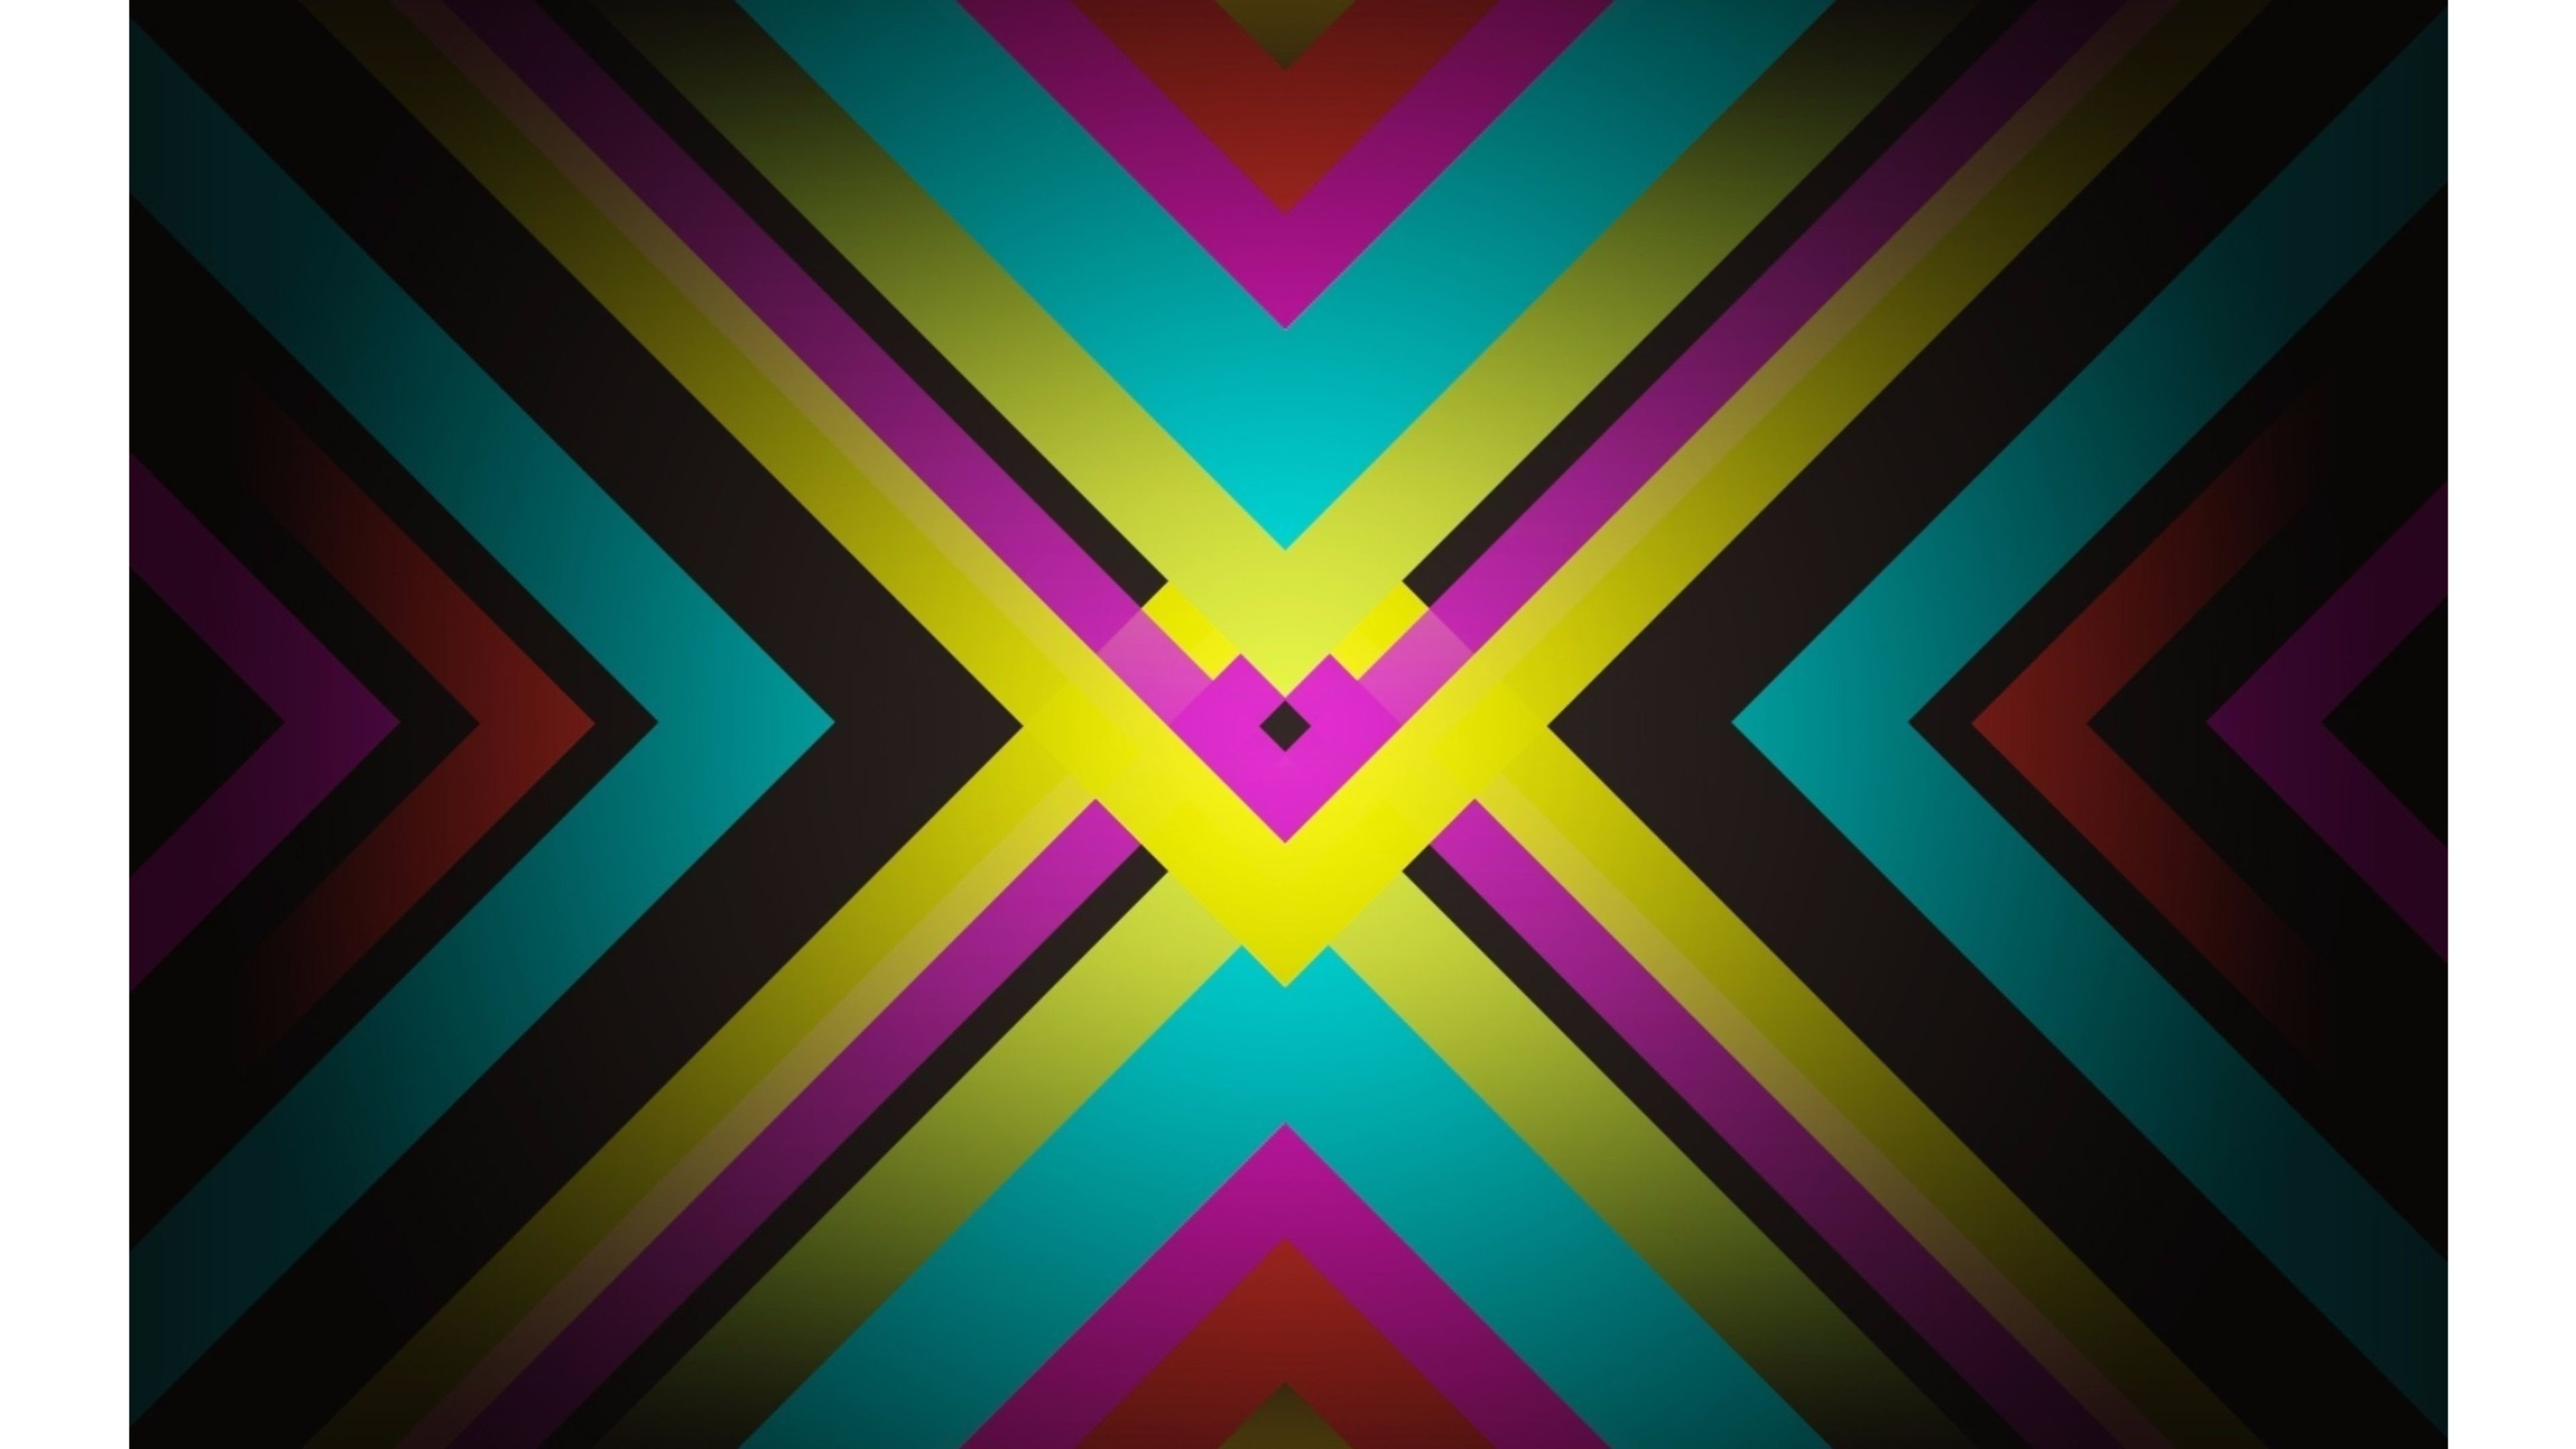 X Marks the Spot 4K Abstract Wallpapers